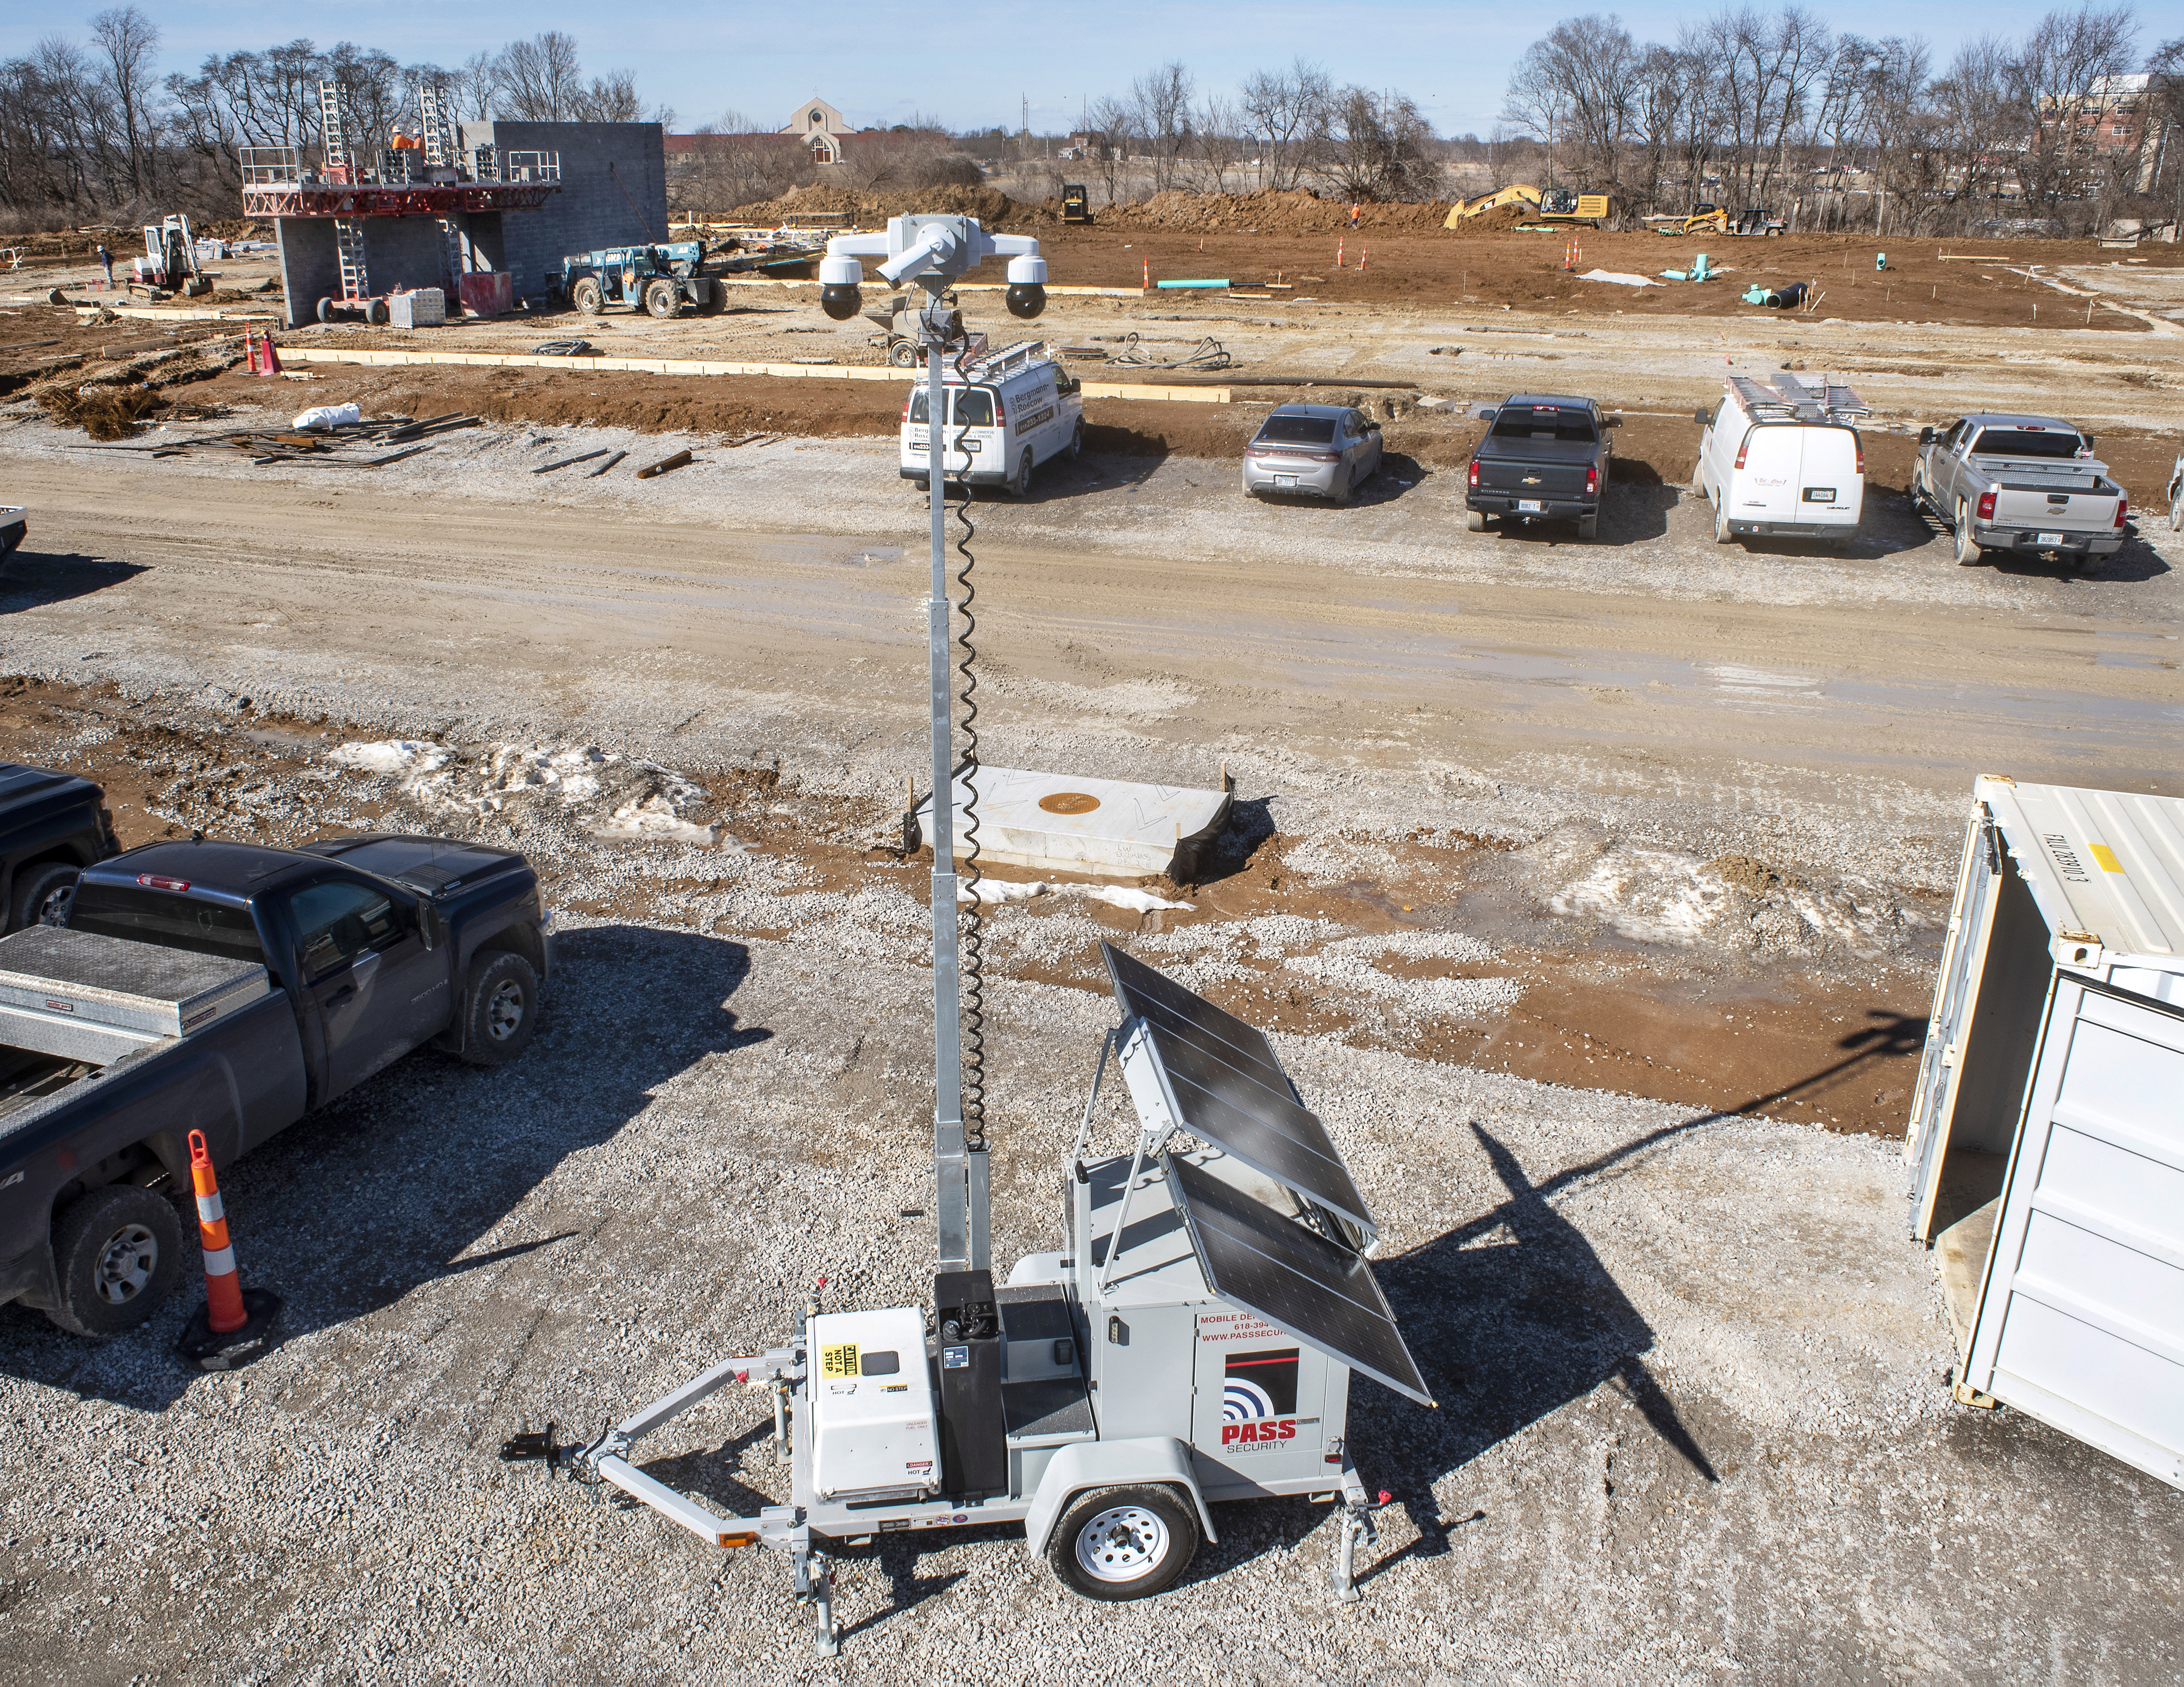 mobile video surveillance security camera trailer on construction site st louis